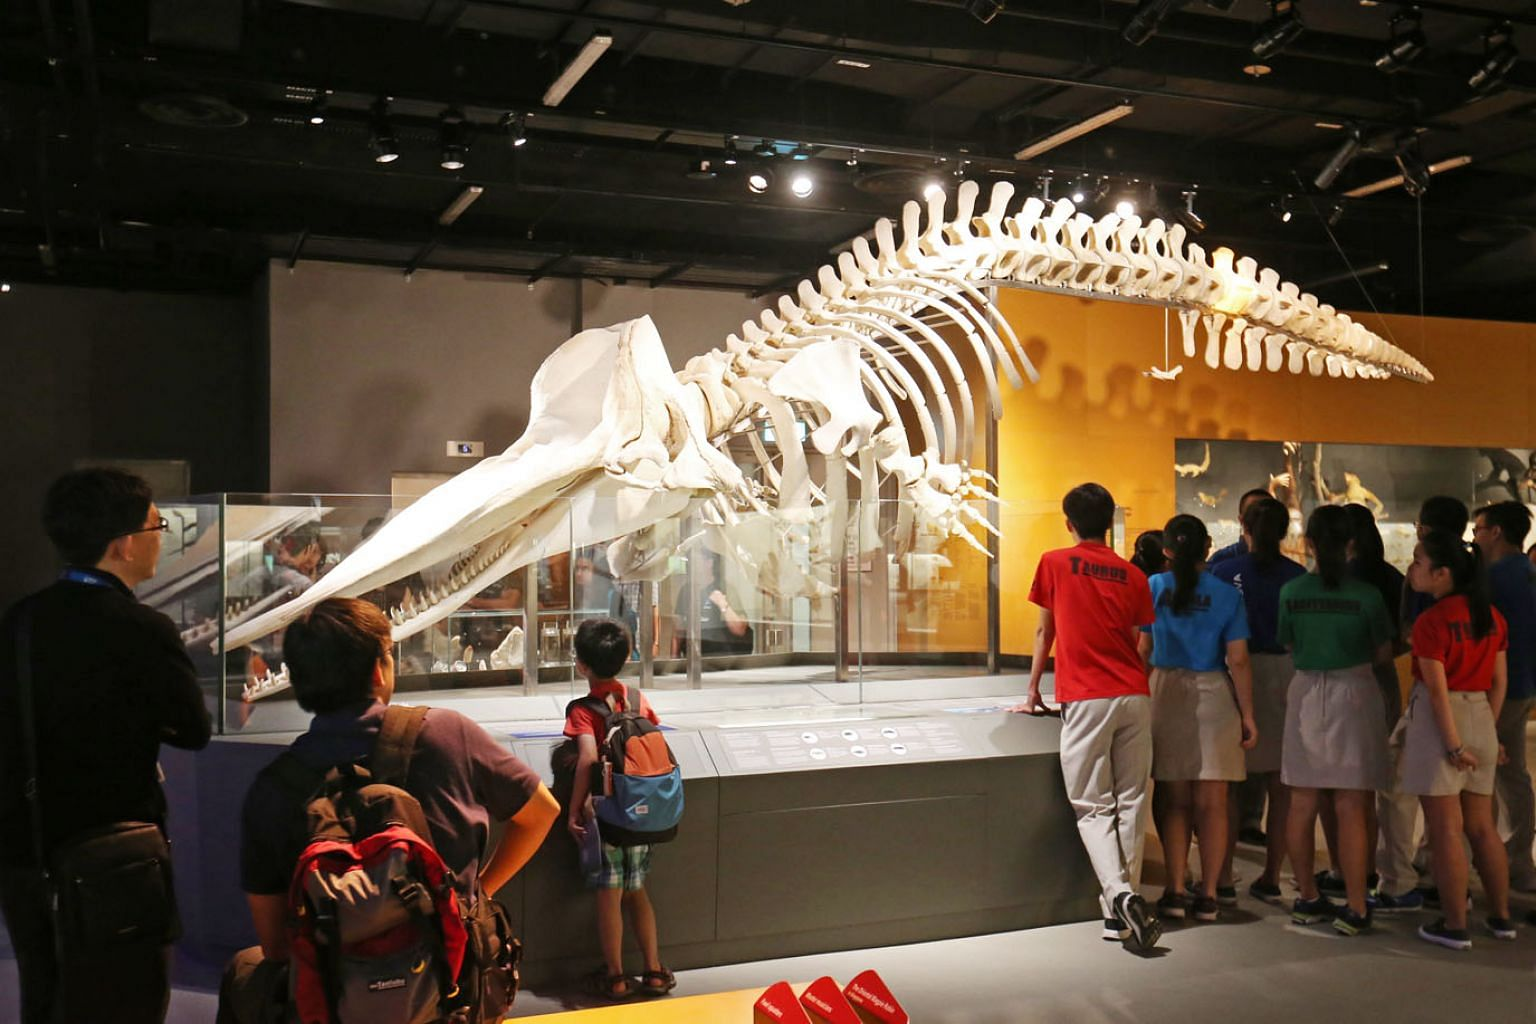 The skeleton of the 10.6m-long sperm whale, nicknamed Jubi Lee, on display at the Lee Kong Chian Natural History Museum. The female whale was found dead off Jurong Island in Singapore's golden jubilee year in 2015, leading to her nickname. From her D